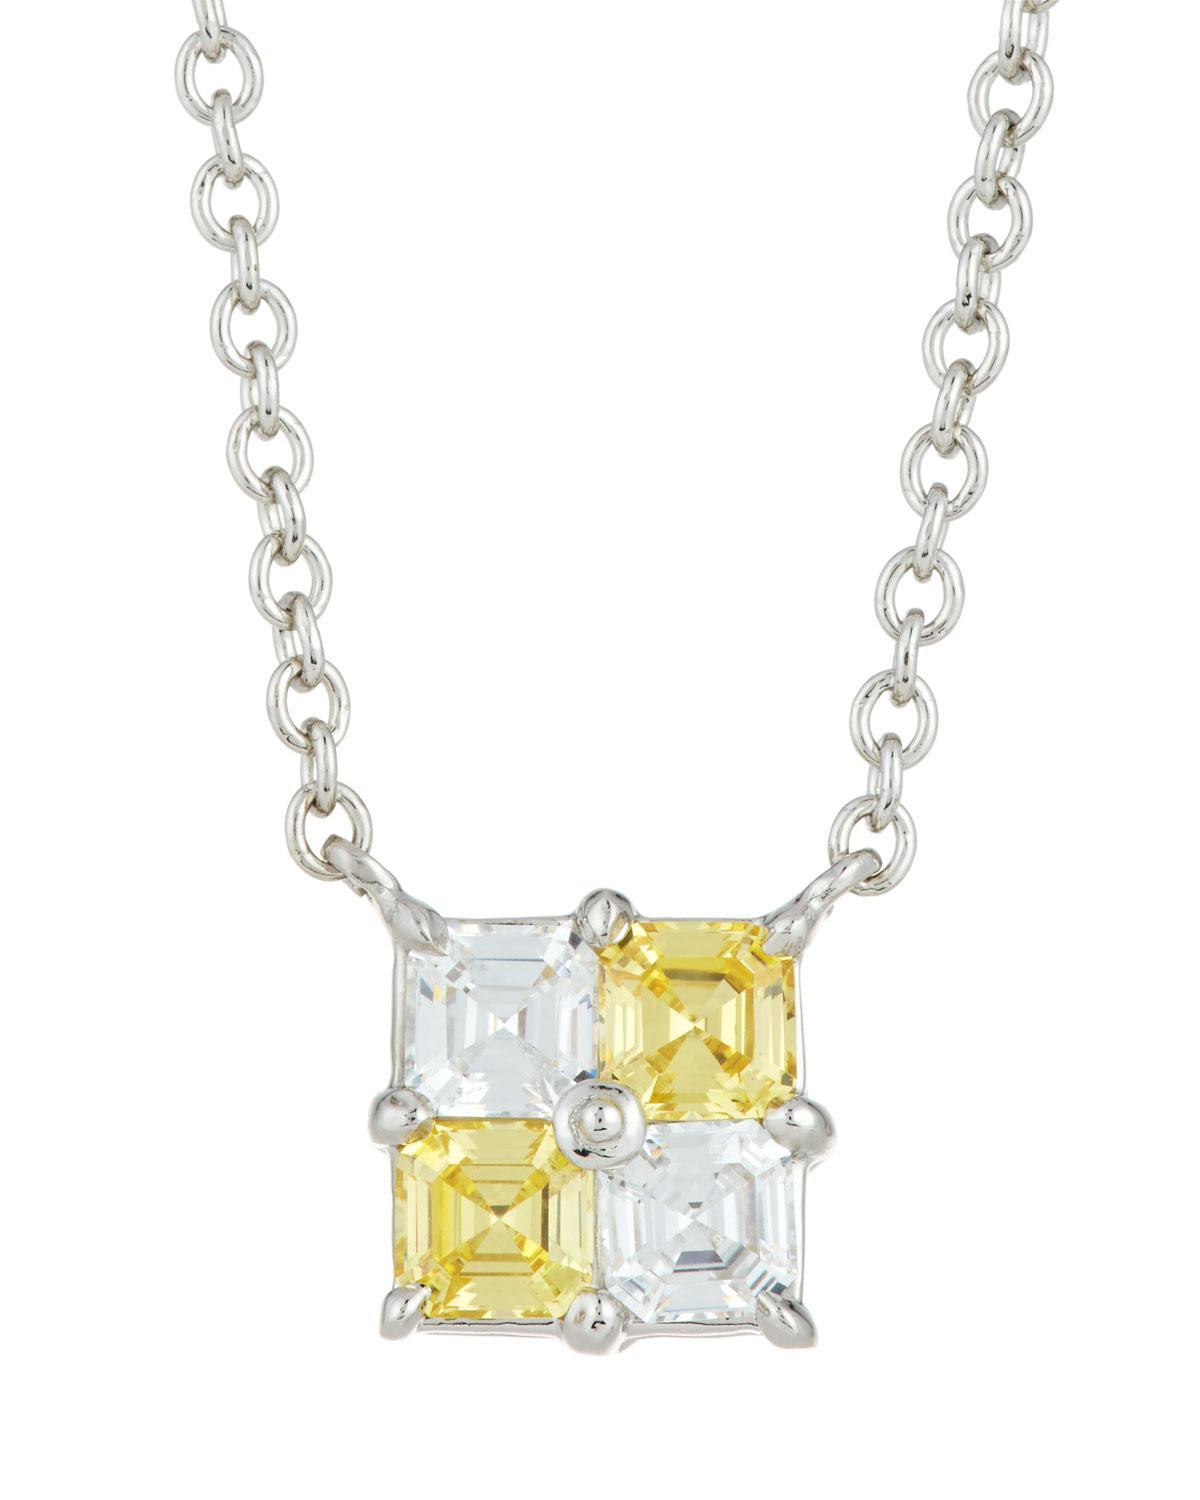 Fantasia Asscher-Cut Crystal Pendant Necklace